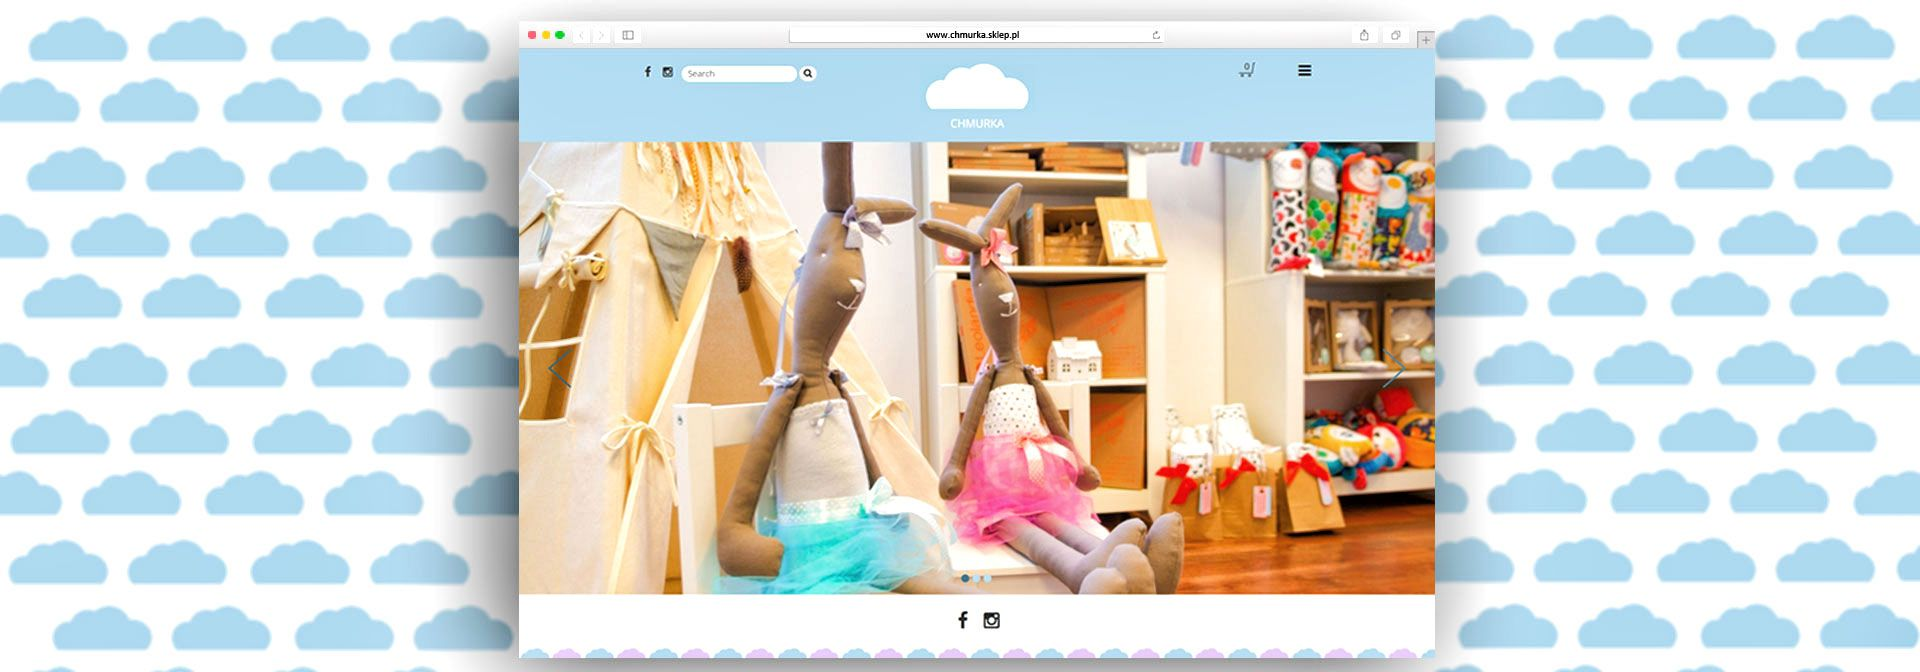 Marui Studio Chmurka Shop Website Development